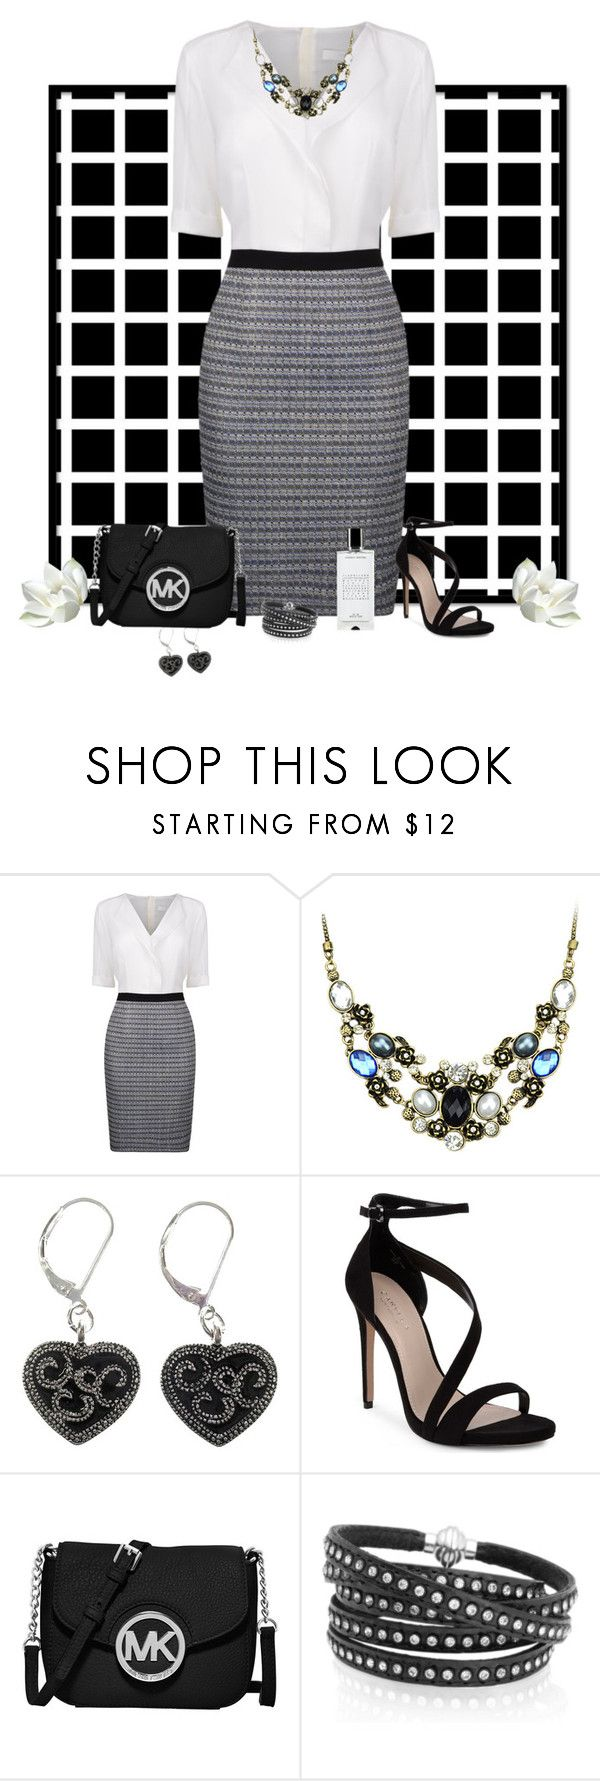 """Friday Night Date"" by cindy-for-fashion ❤ liked on Polyvore featuring BOSS Black, Carvela, MICHAEL Michael Kors, Sif Jakobs Jewellery and Agonist"